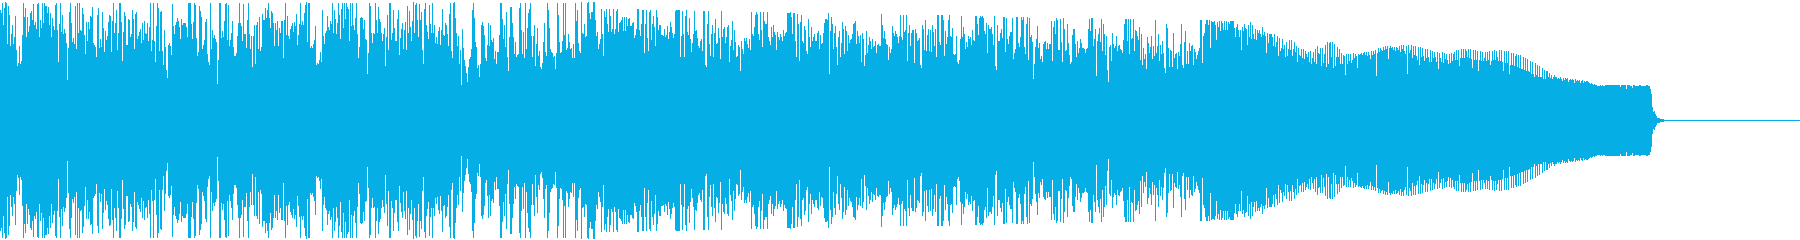 Country style guitar intro-06F's reproduced waveform